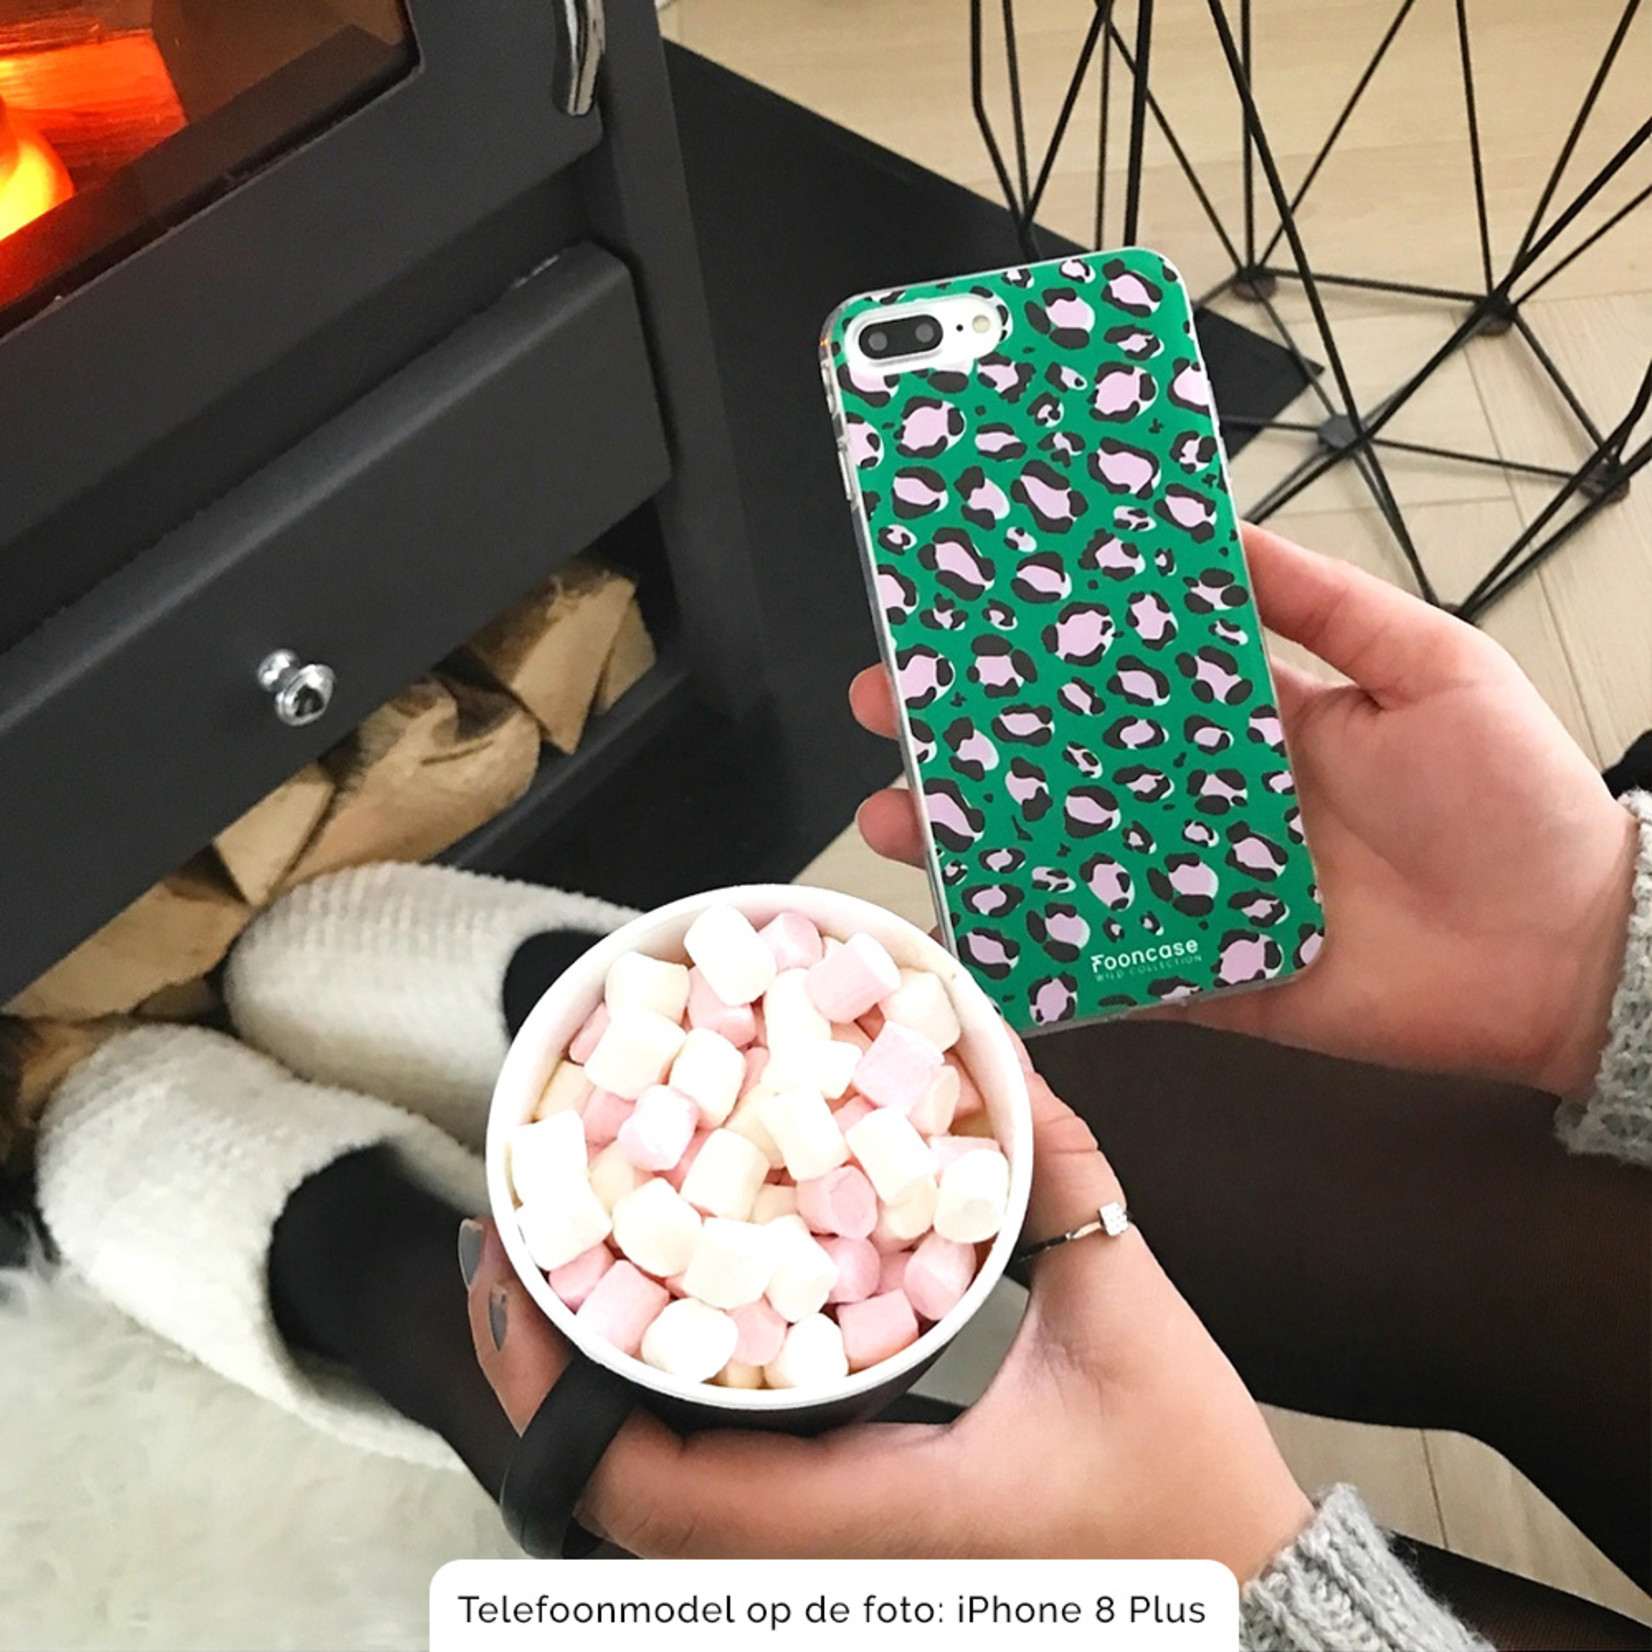 FOONCASE Samsung Galaxy S6 hoesje TPU Soft Case - Back Cover - WILD COLLECTION / Luipaard / Leopard print / Groen